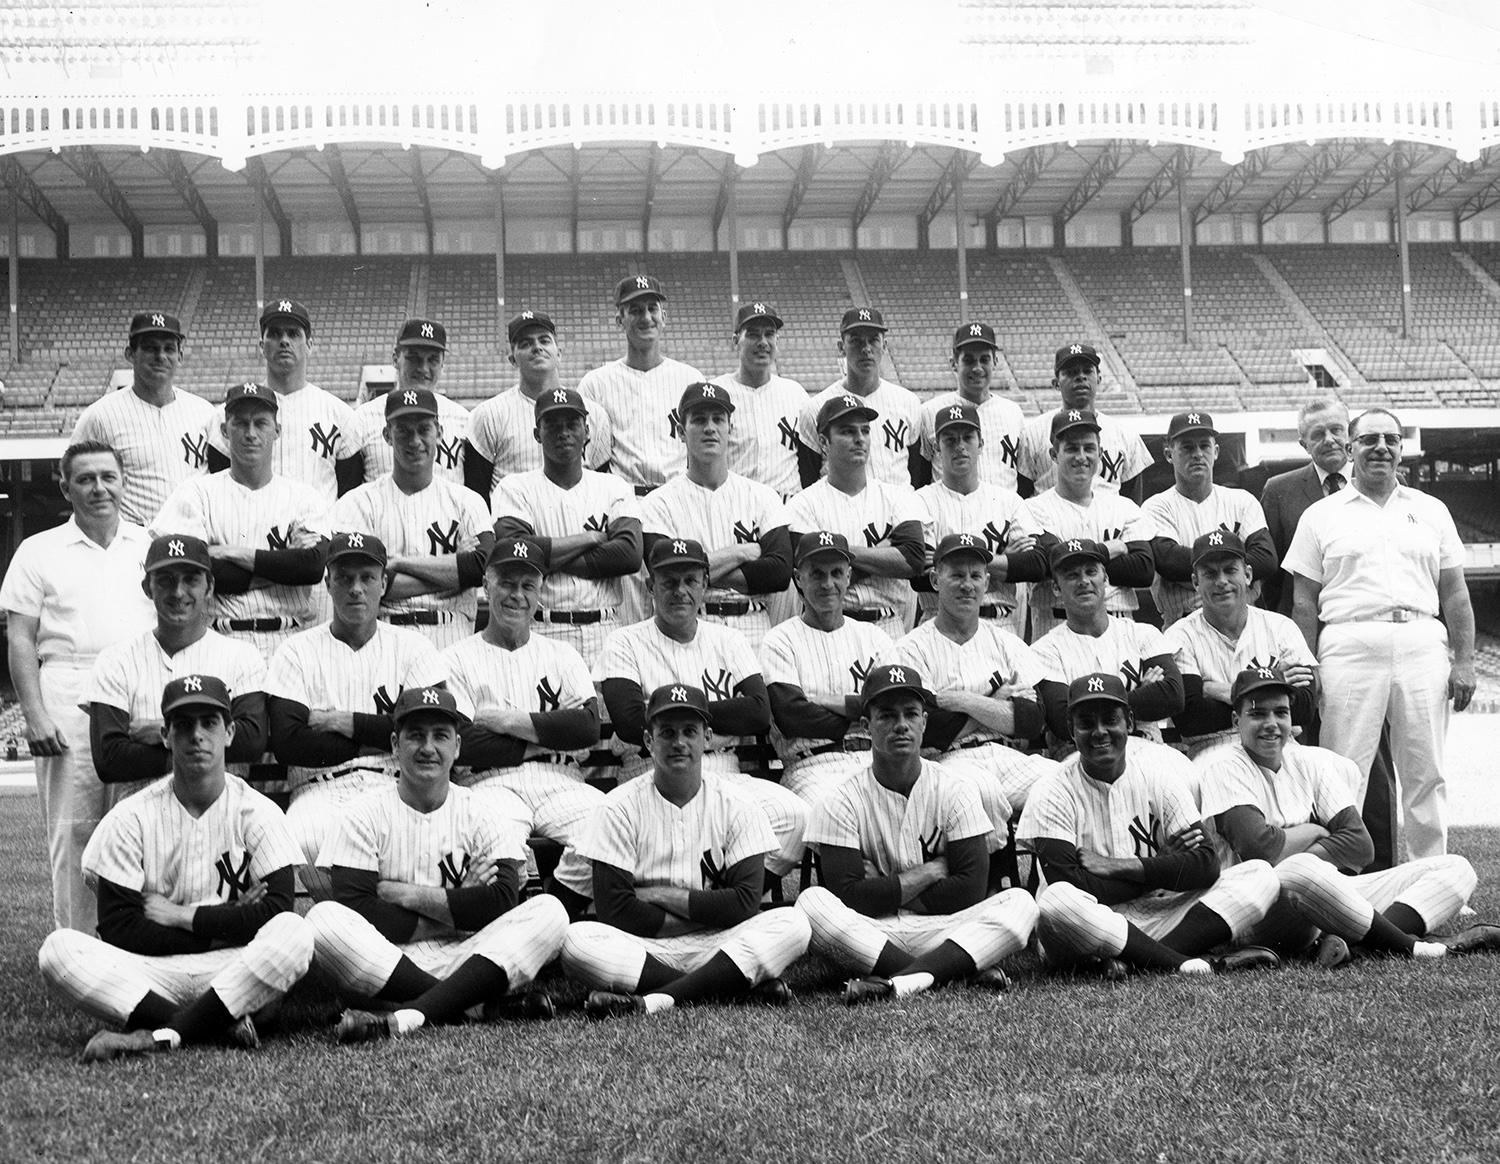 Bill Robinson played on the New York Yankees from 1967-1969. In this 1968 Yankees team photo, he is pictured in the third row, third from the left. (National Baseball Hall of Fame and Museum)